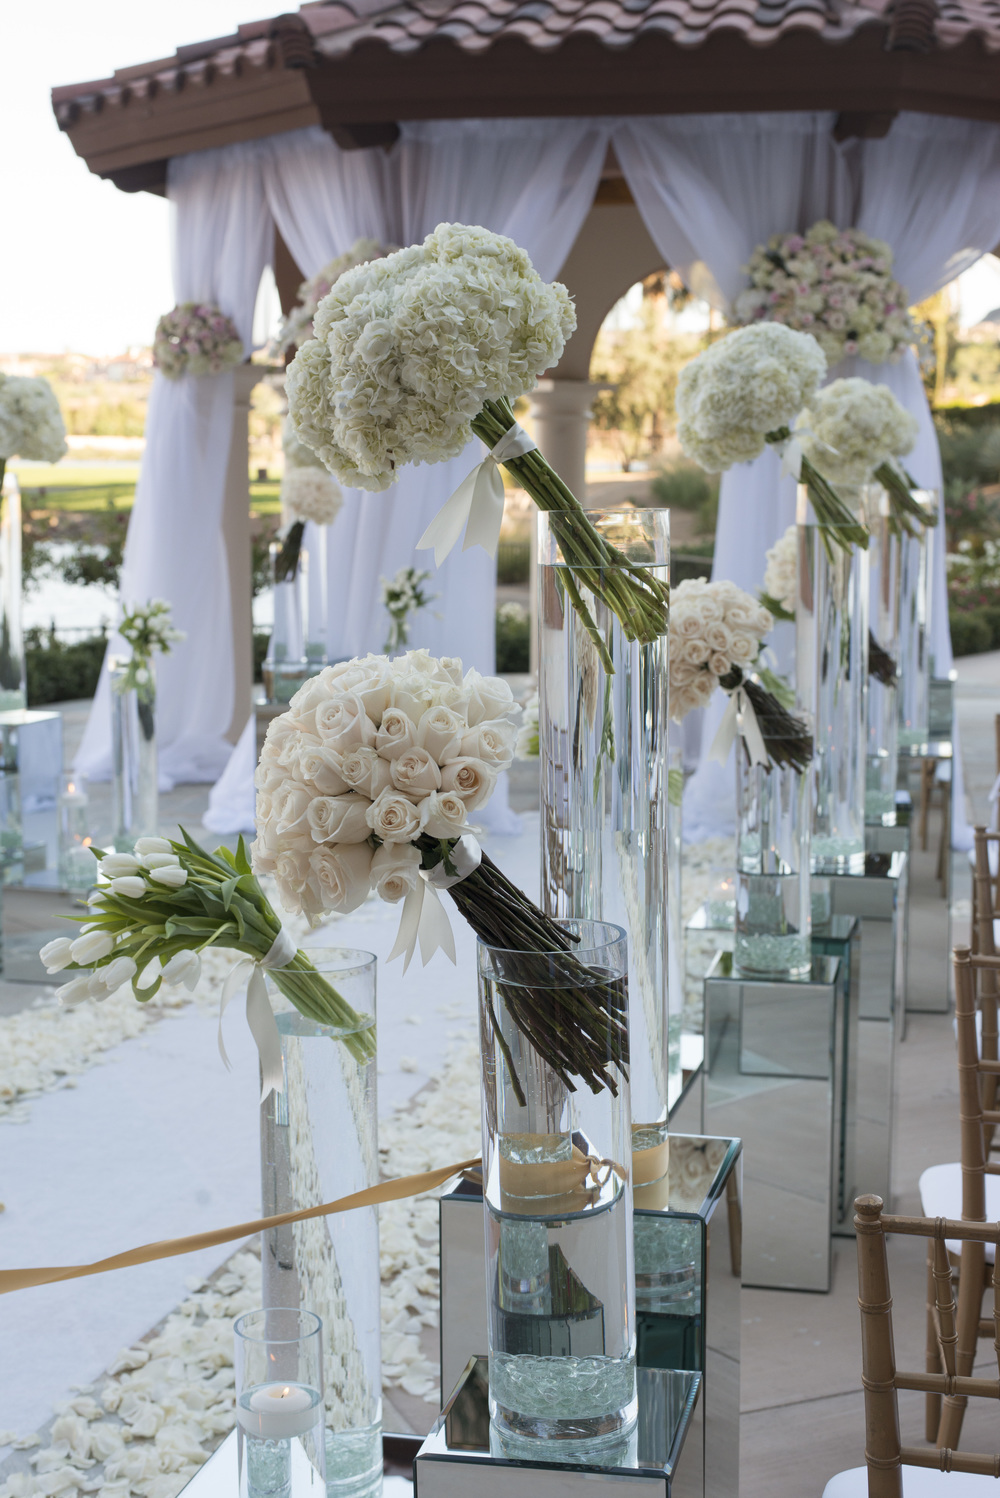 Aisle lined with Jeff Leatham style Centerpieces.  Vendor Credits: Las Vegas Wedding Planner:  Andrea Eppolito Events  | Venue: The Westin Lake Las Vegas  |  Floral & Decor:  Flora Couture |  Photography:  Altf Photography  |  Videography: Something New Films  | Wedding Cake:  Peridot Sweets  |  Beauty by:  Make Up in the 702  |  Wedding Gown: P'Nina Tornai  |  Veil: Kleinfeld New York  |  Shoes:  Christian Louboutin  |  Tuxedo:  Men's Warehouse